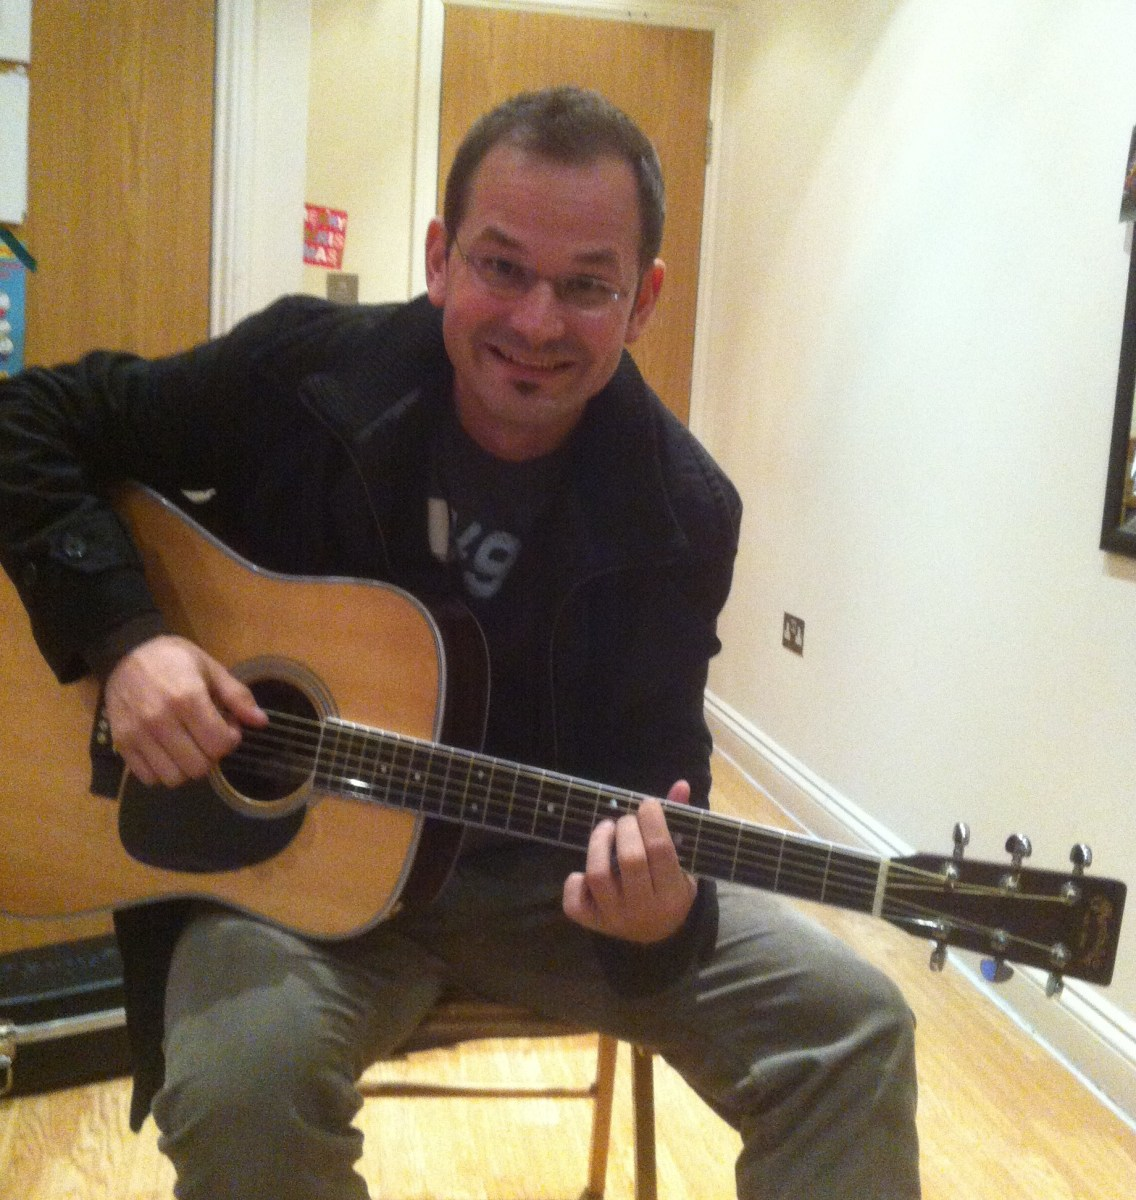 Marc Sallin - Five Days Acoustic Guitar Lesson with Marco Cirillo - London Guitar Tutor in London